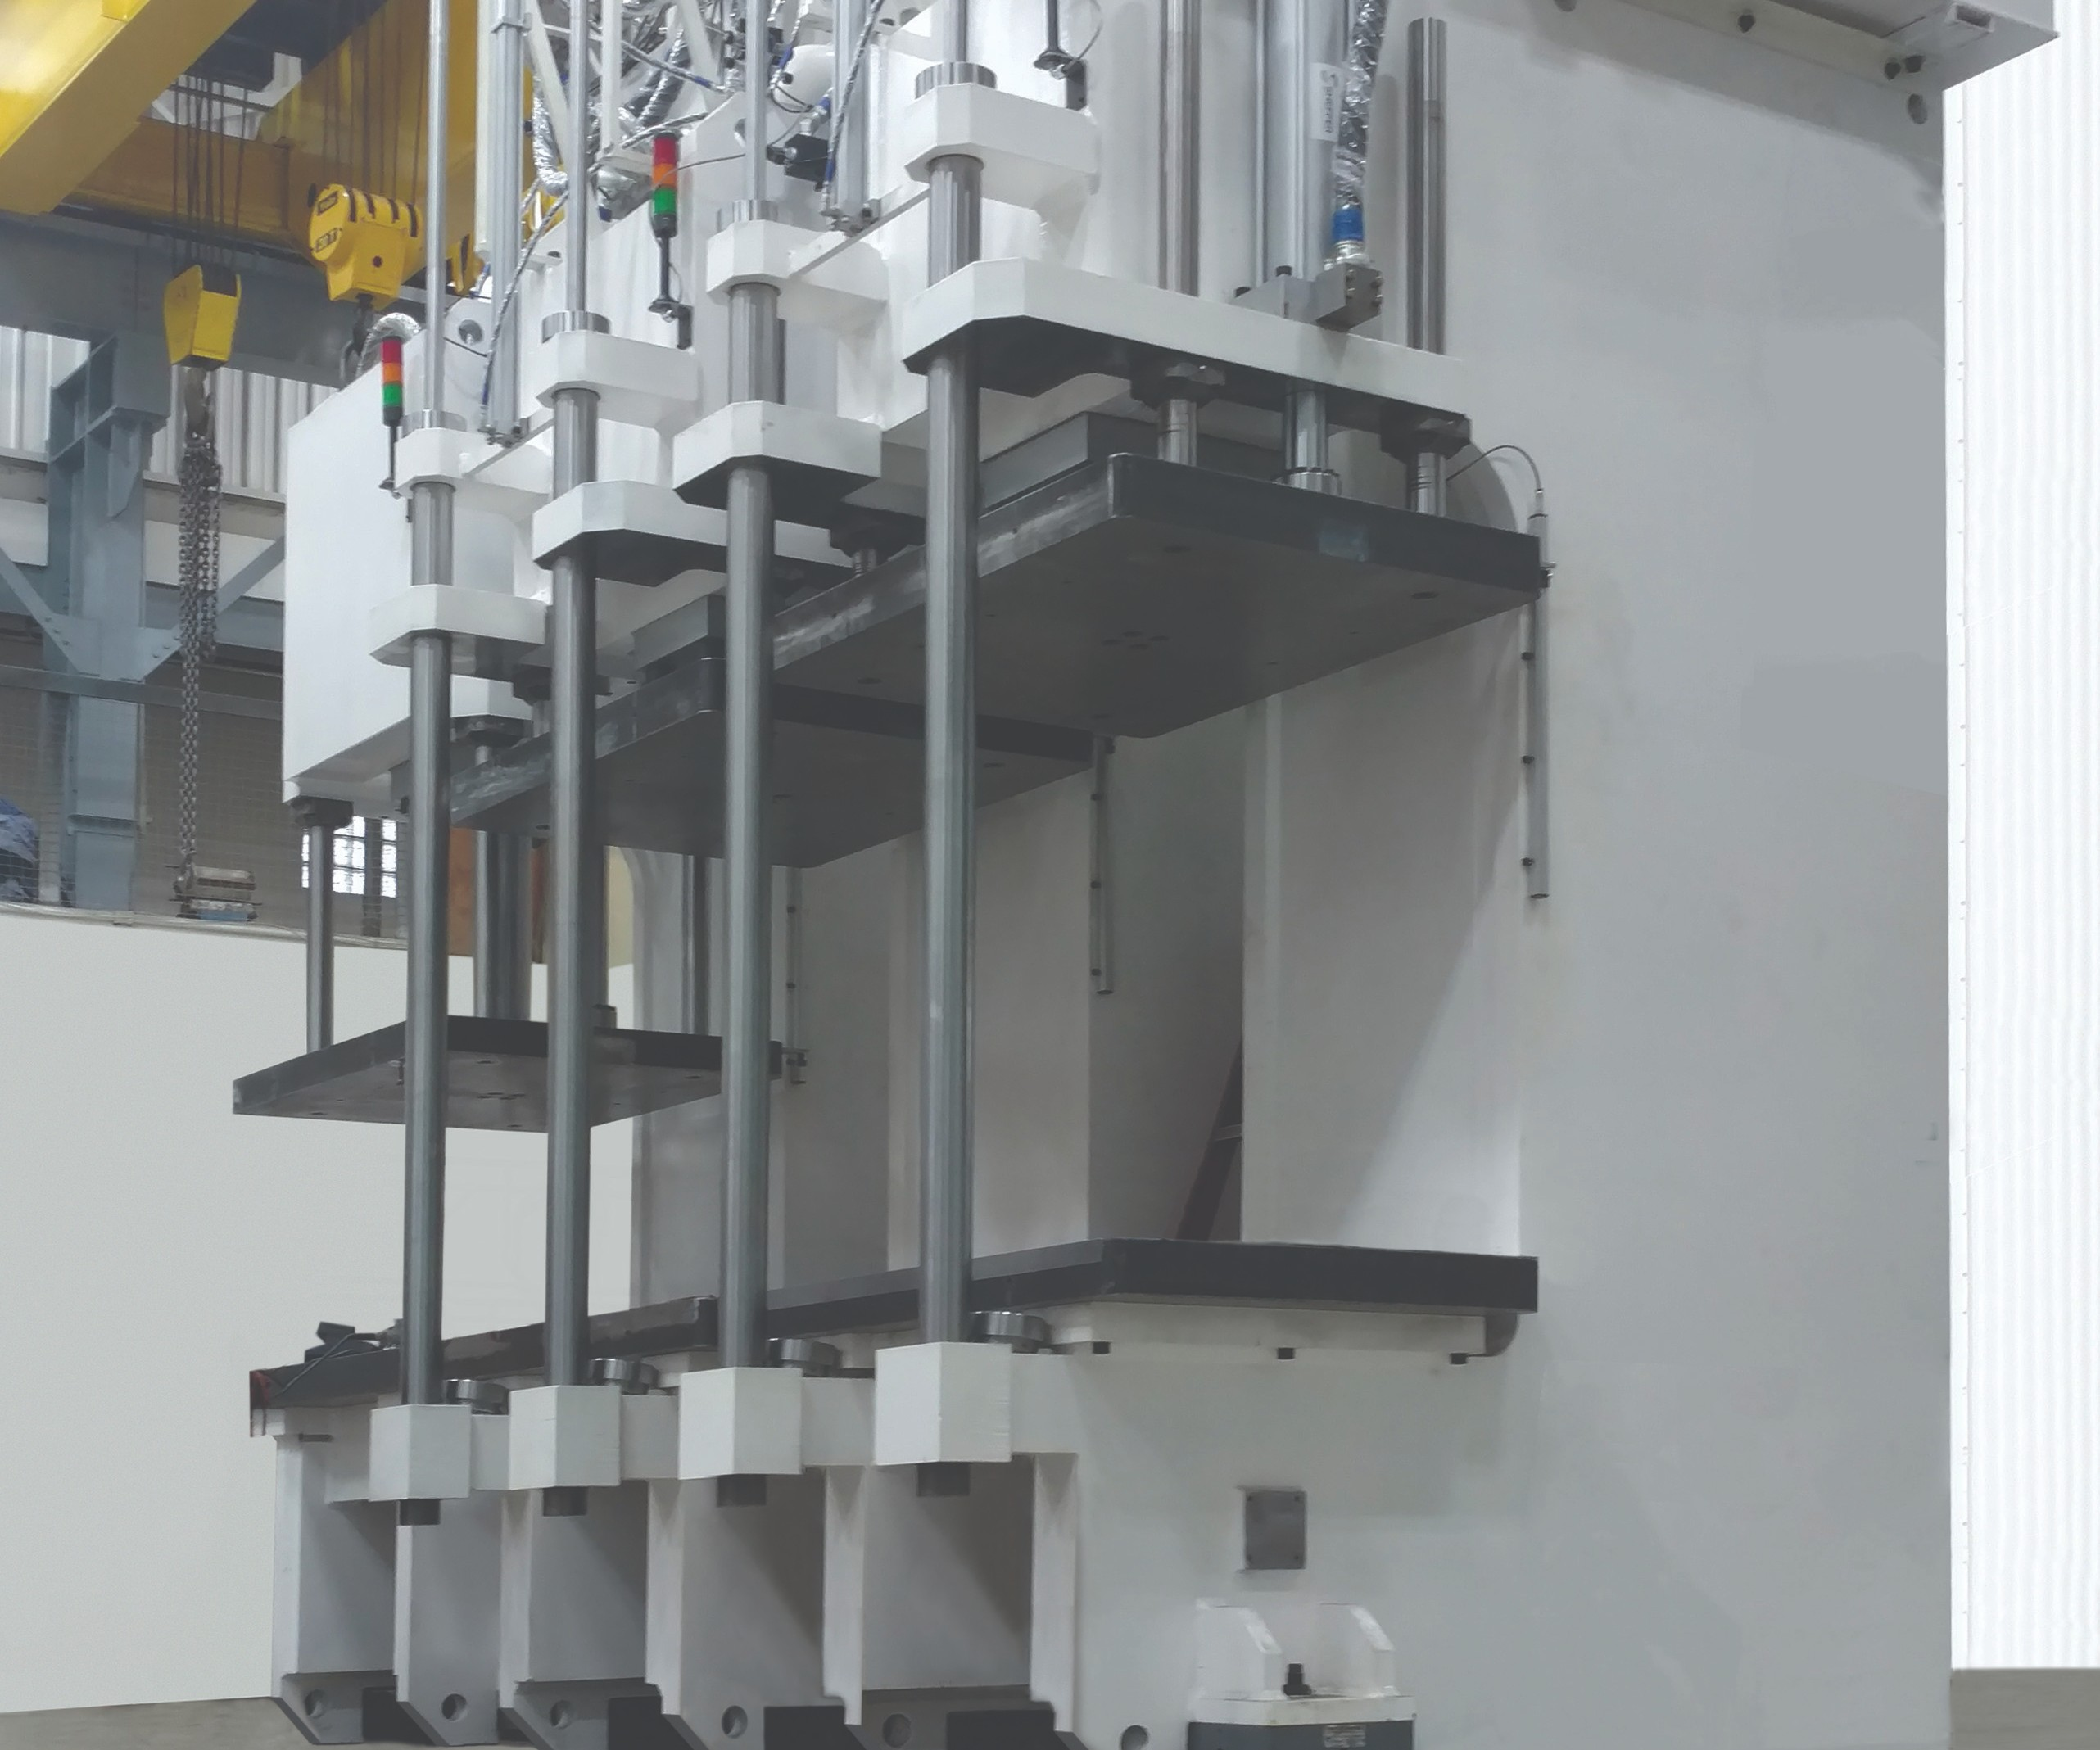 Greenerd will display its Transfer series of hydraulic presses at IMTS 2018.